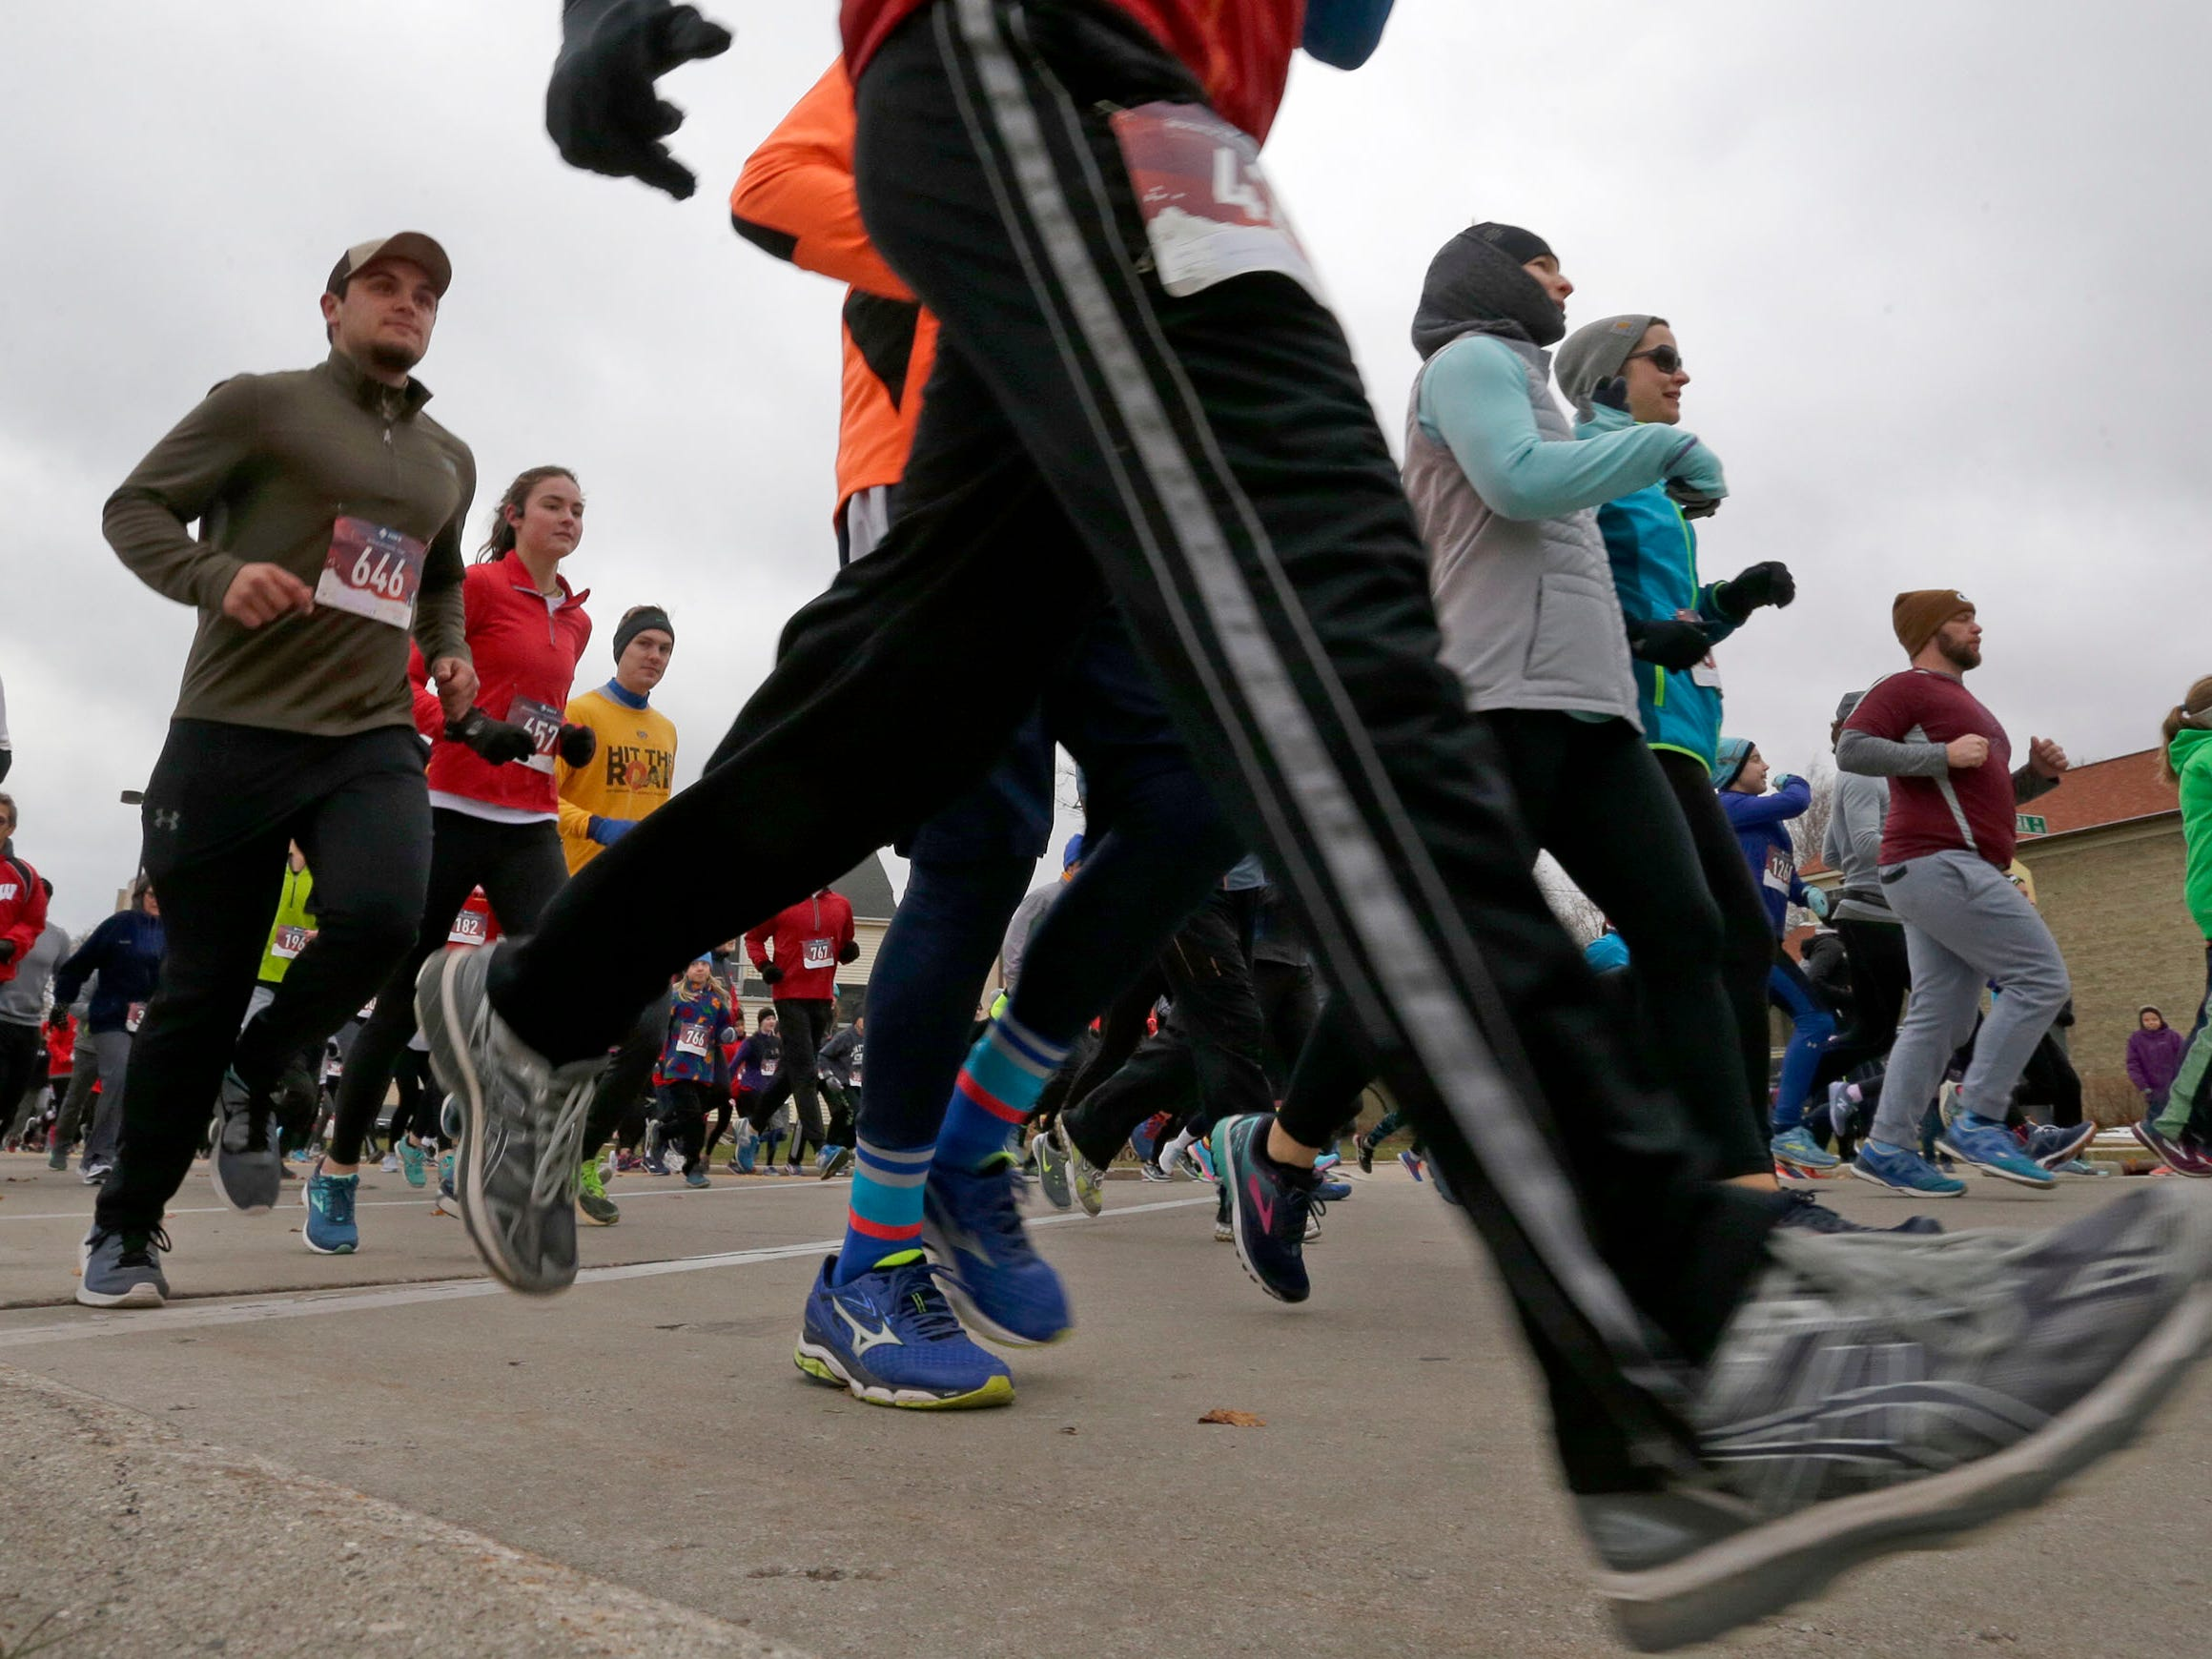 Runners at the start of the Doug Opel Run for the Kids, Thursday, November 22, 2018, in Sheboygan, Wis.